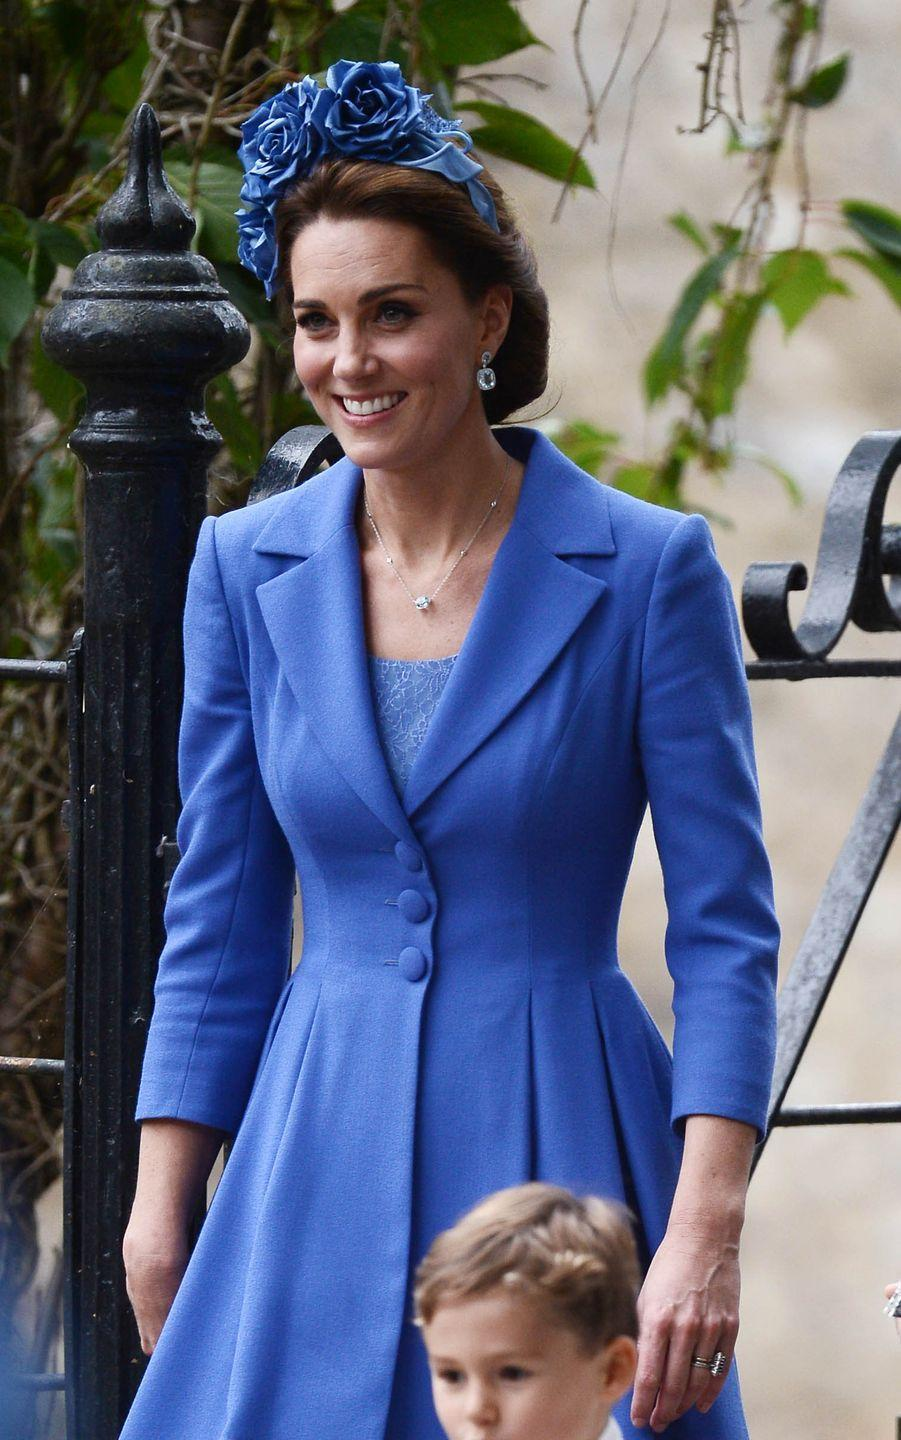 """<p>Kate attended <a href=""""https://www.townandcountrymag.com/society/tradition/a23398732/prince-george-princess-charlotte-sophie-carter-wedding/"""" rel=""""nofollow noopener"""" target=""""_blank"""" data-ylk=""""slk:the wedding of her close friend"""" class=""""link rapid-noclick-resp"""">the wedding of her close friend</a>, Sophie Carter, wearing a bespoke royal blue coat and dress by Catherine Walker. <a href=""""https://www.townandcountrymag.com/society/tradition/g10314690/kate-middleton-fashion-royal-tour-2017/"""" rel=""""nofollow noopener"""" target=""""_blank"""" data-ylk=""""slk:The Duchess first wore this look"""" class=""""link rapid-noclick-resp"""">The Duchess first wore this look</a> while on a royal tour of Poland and Germany last year. </p>"""